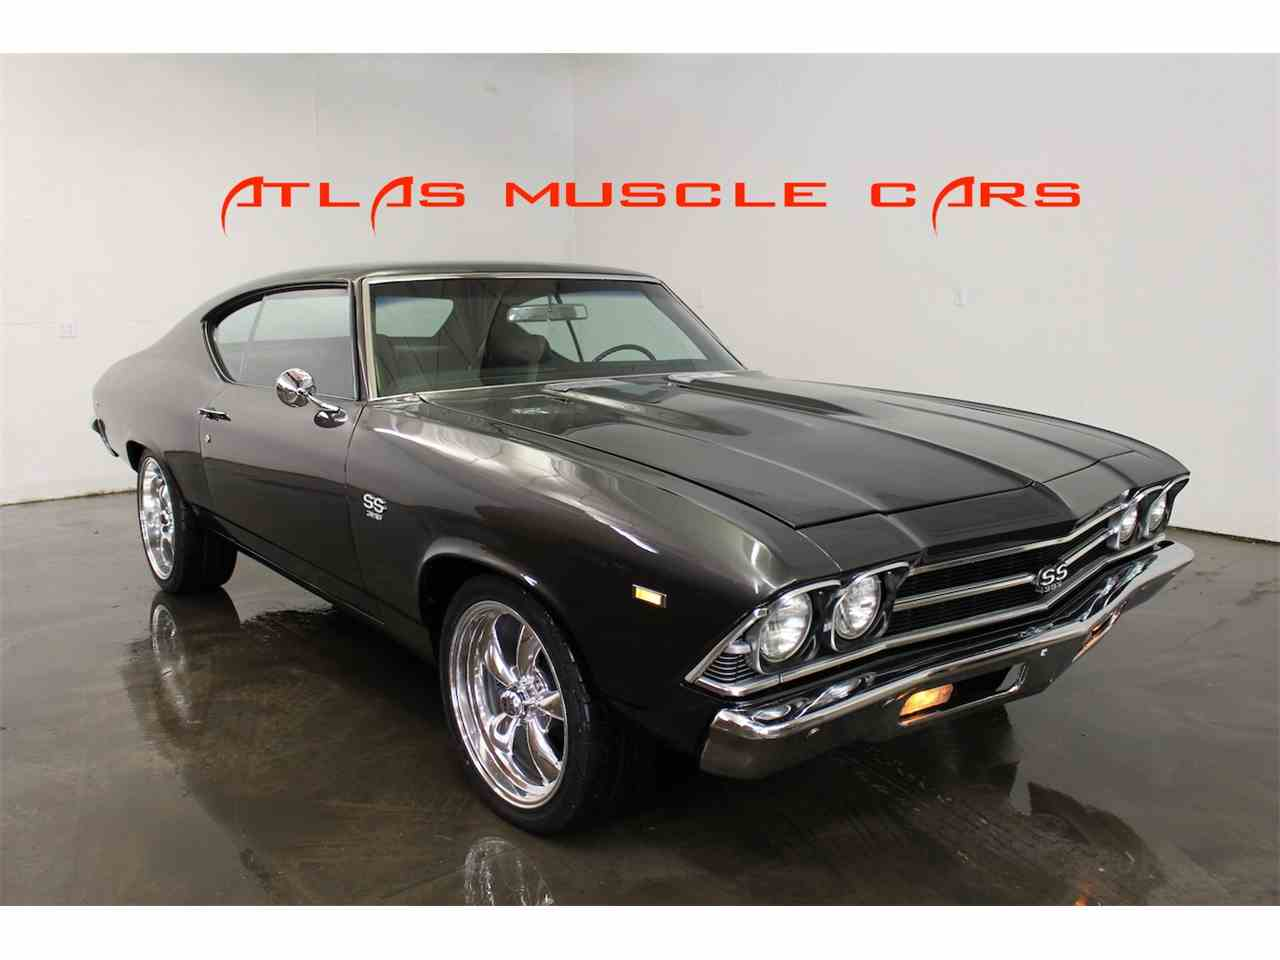 1969 Chevrolet Chevelle for Sale on ClassicCars.com - Pg 4